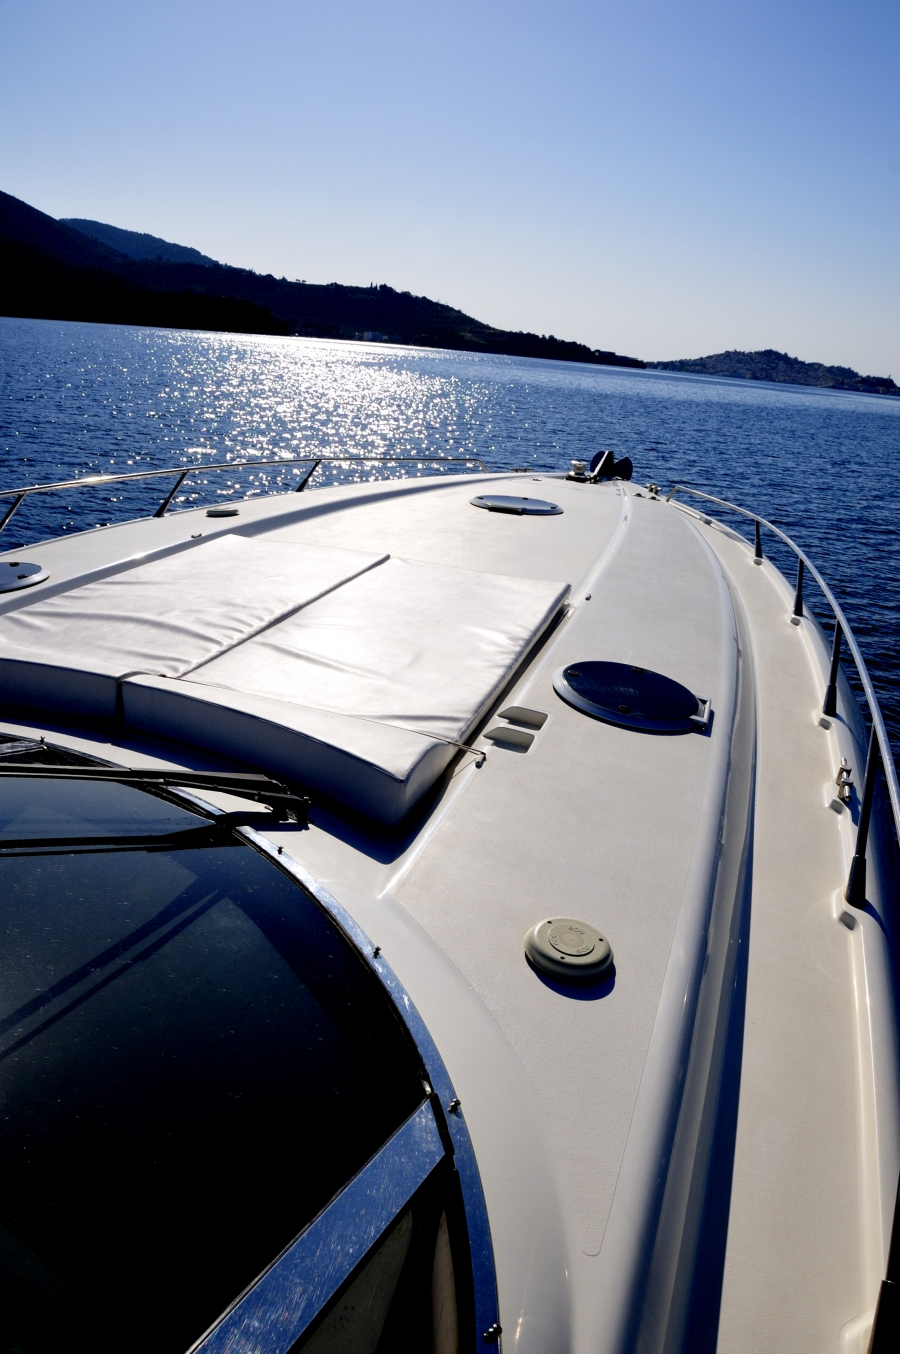 Spacious Bow deck for sunbathing and fun!